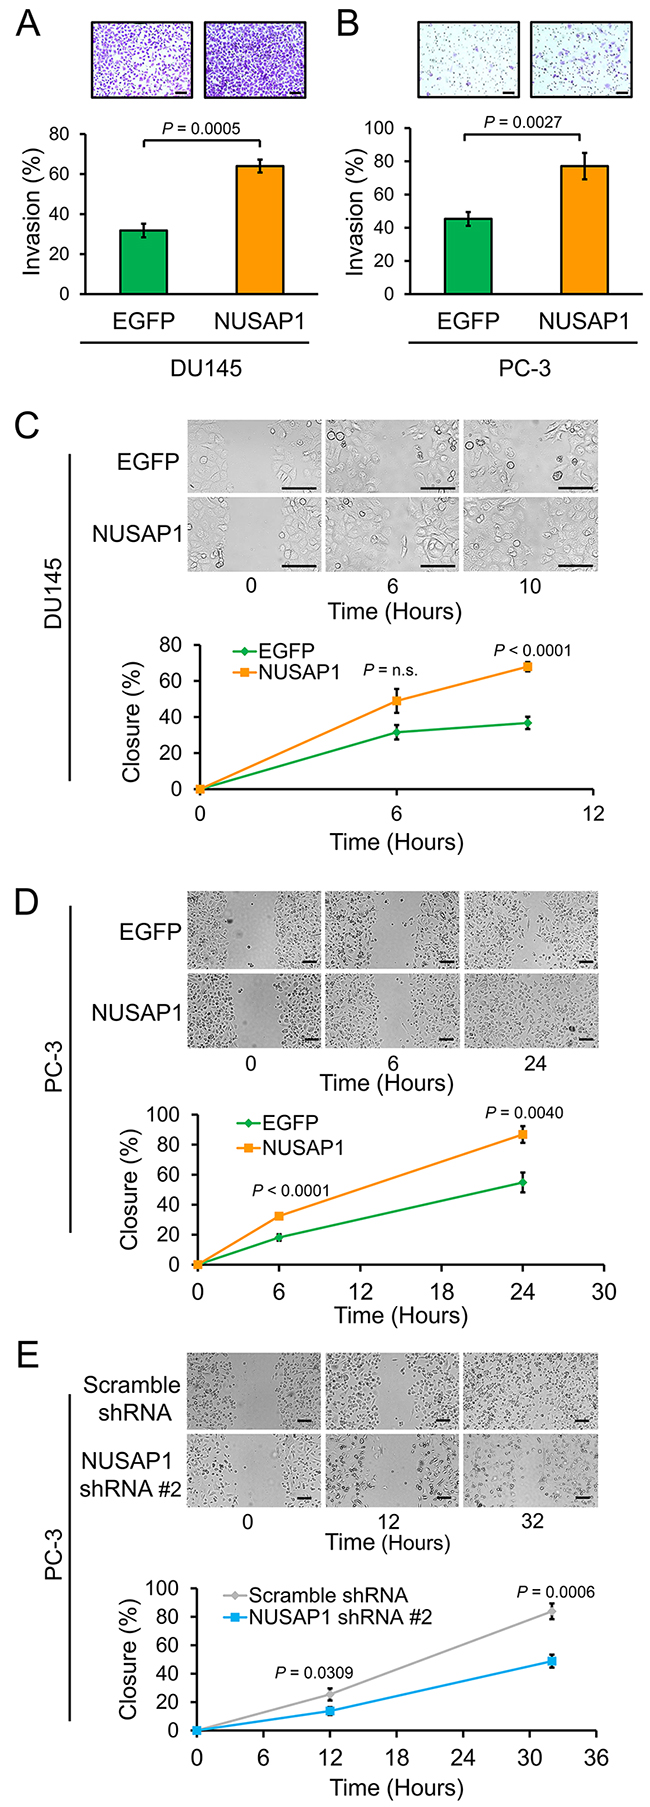 NUSAP1 overexpression increases invasion and migration of prostate cancer cells.